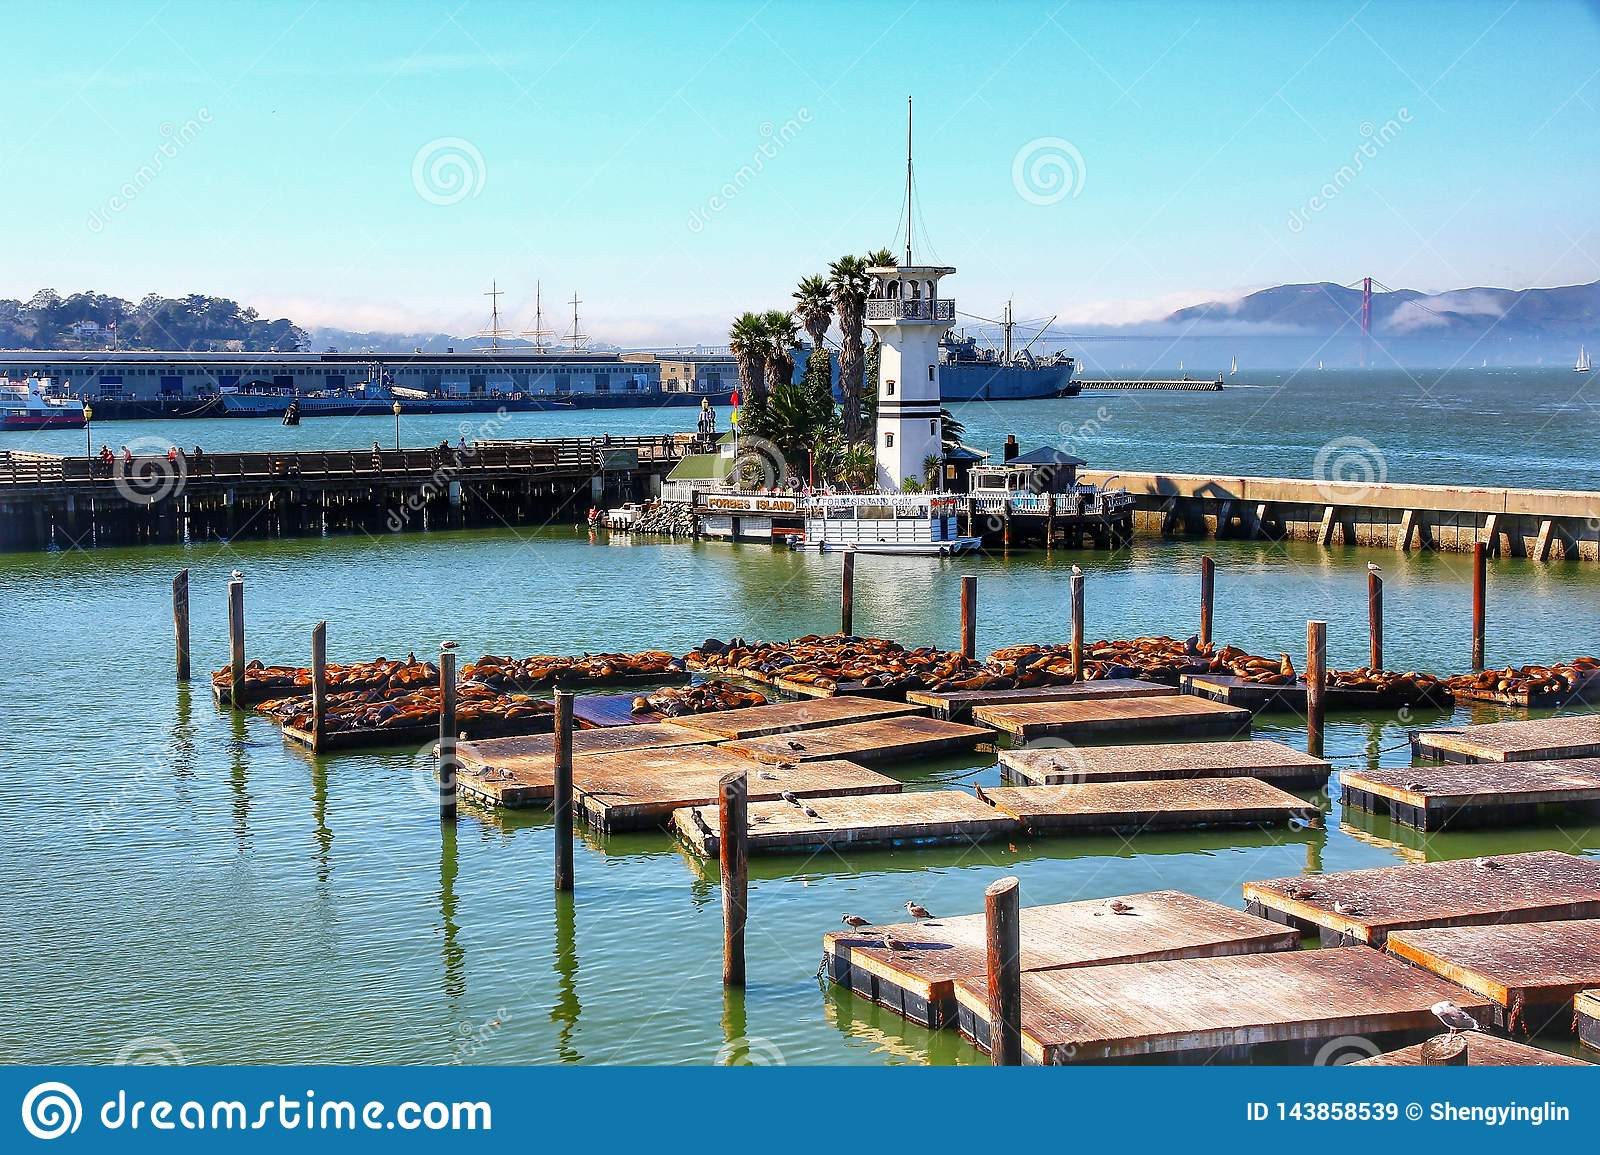 Sea lions at Pier 39 a popular tourist attraction